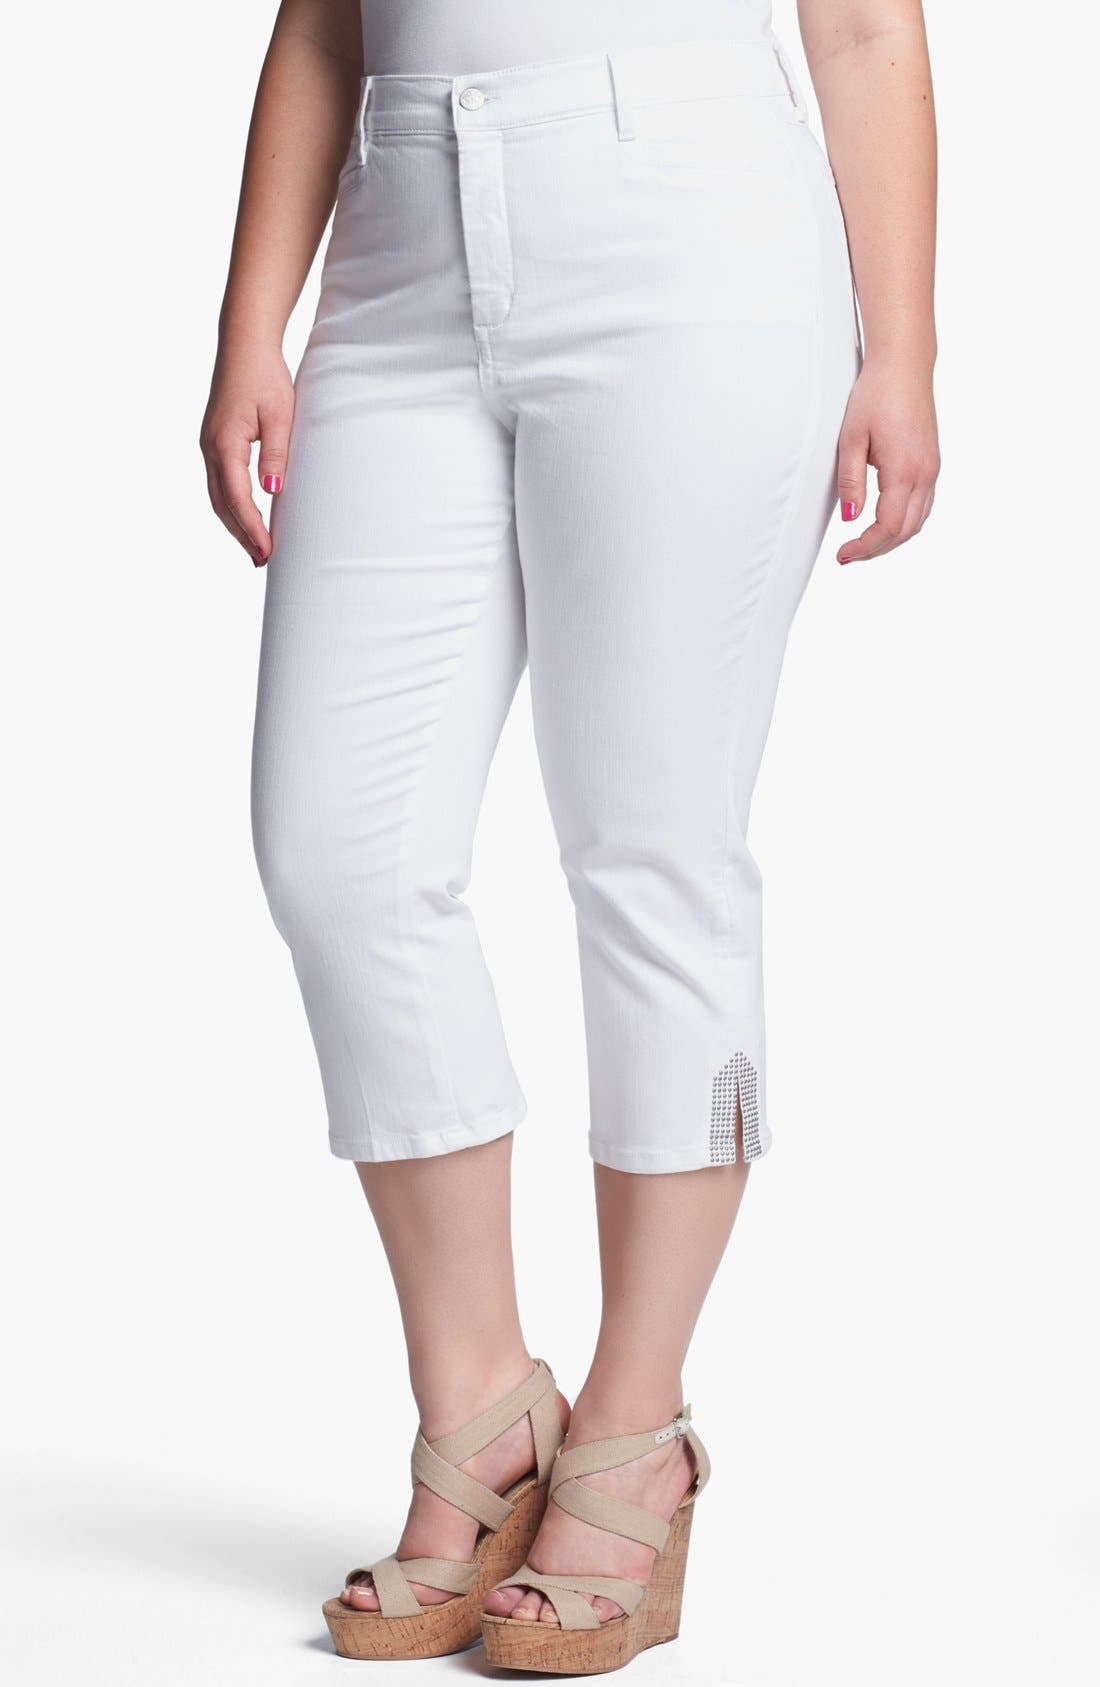 Alternate Image 1 Selected - NYDJ 'Suzy' Crop Jeans (Plus Size)